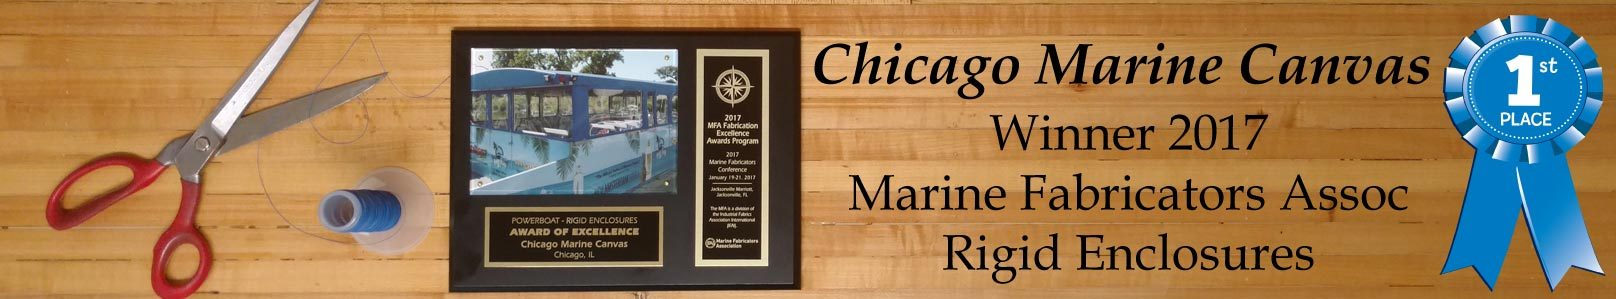 Chicago Marine Canvas - 2017 Marine Fabricator Association Winner